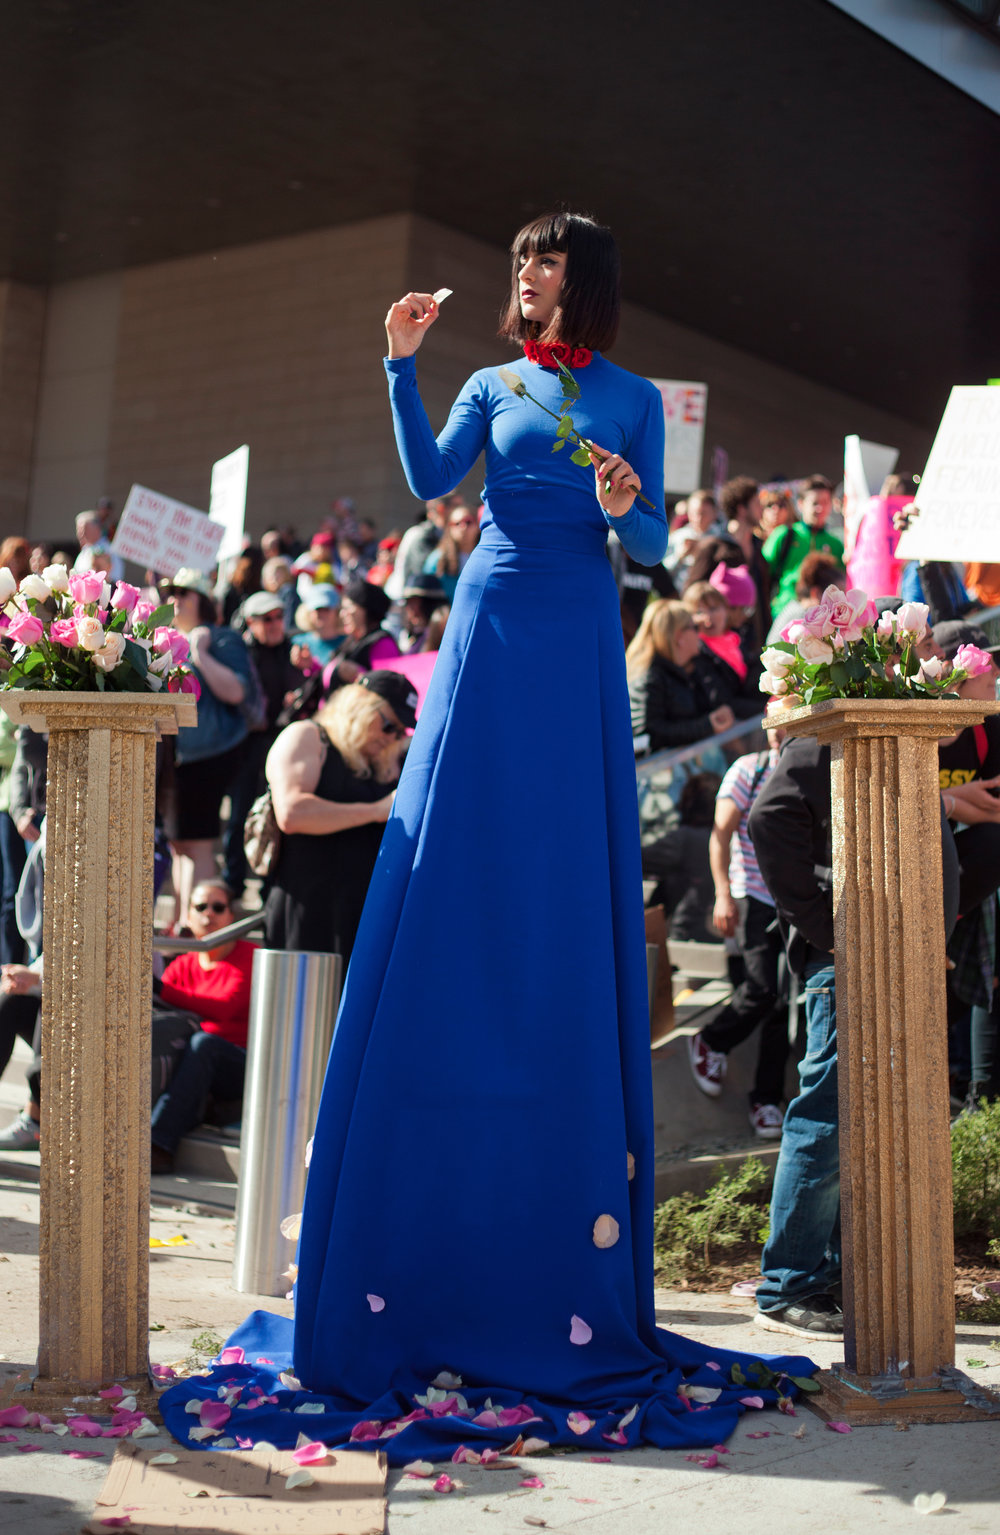 Cocovan - Women's March LA performance - credit Romain Yurkievich 3.jpg